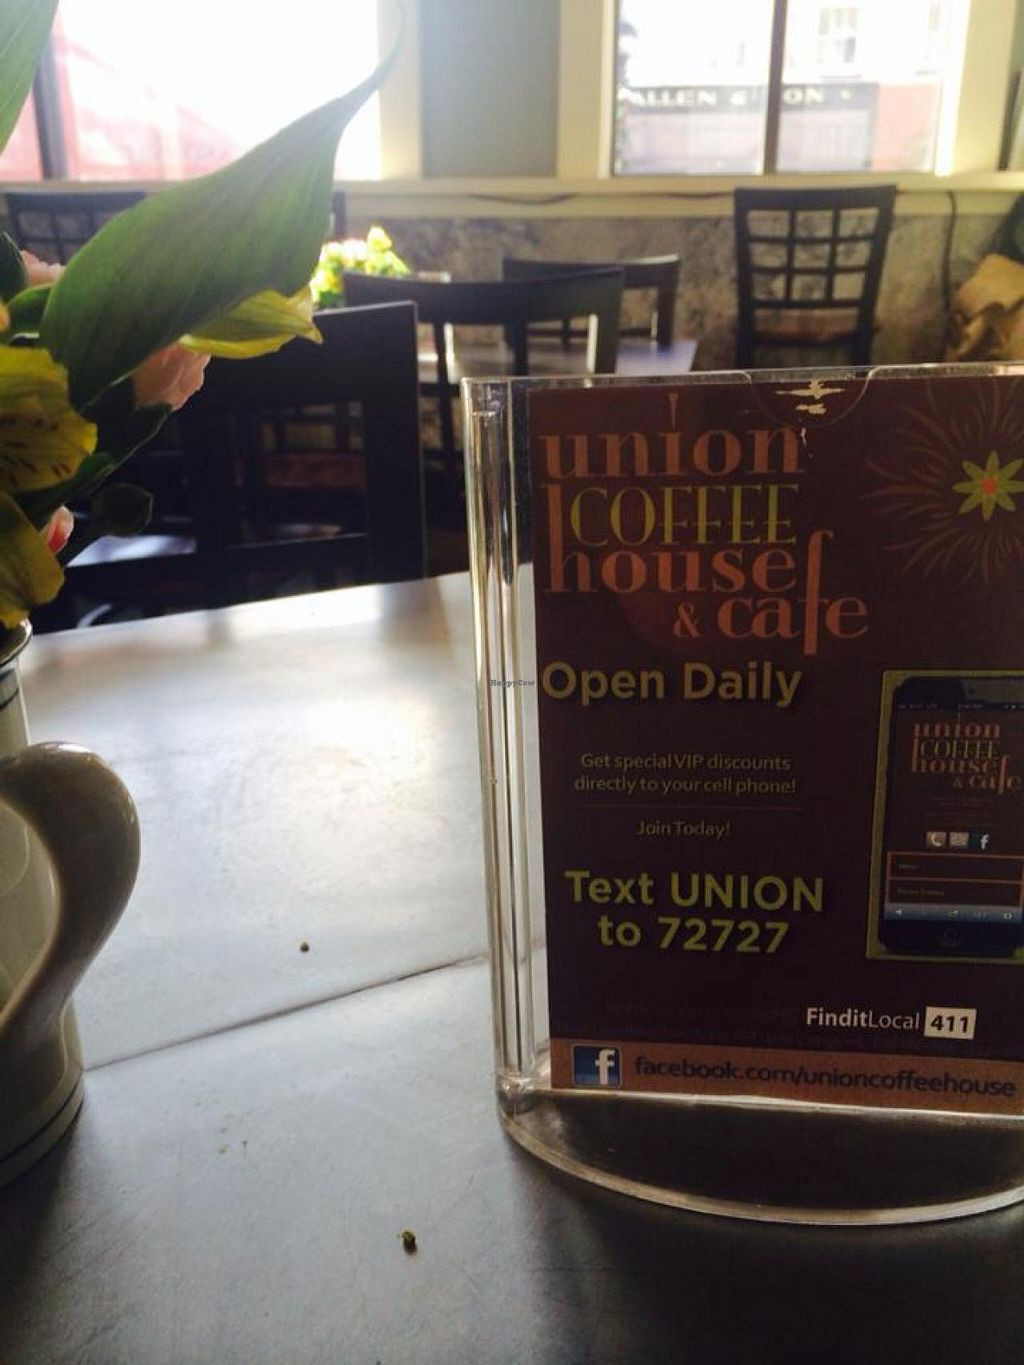 "Photo of Union Coffee House and Cafe  by <a href=""/members/profile/community"">community</a> <br/>Union Coffee House and Cafe <br/> February 25, 2015  - <a href='/contact/abuse/image/56011/94103'>Report</a>"